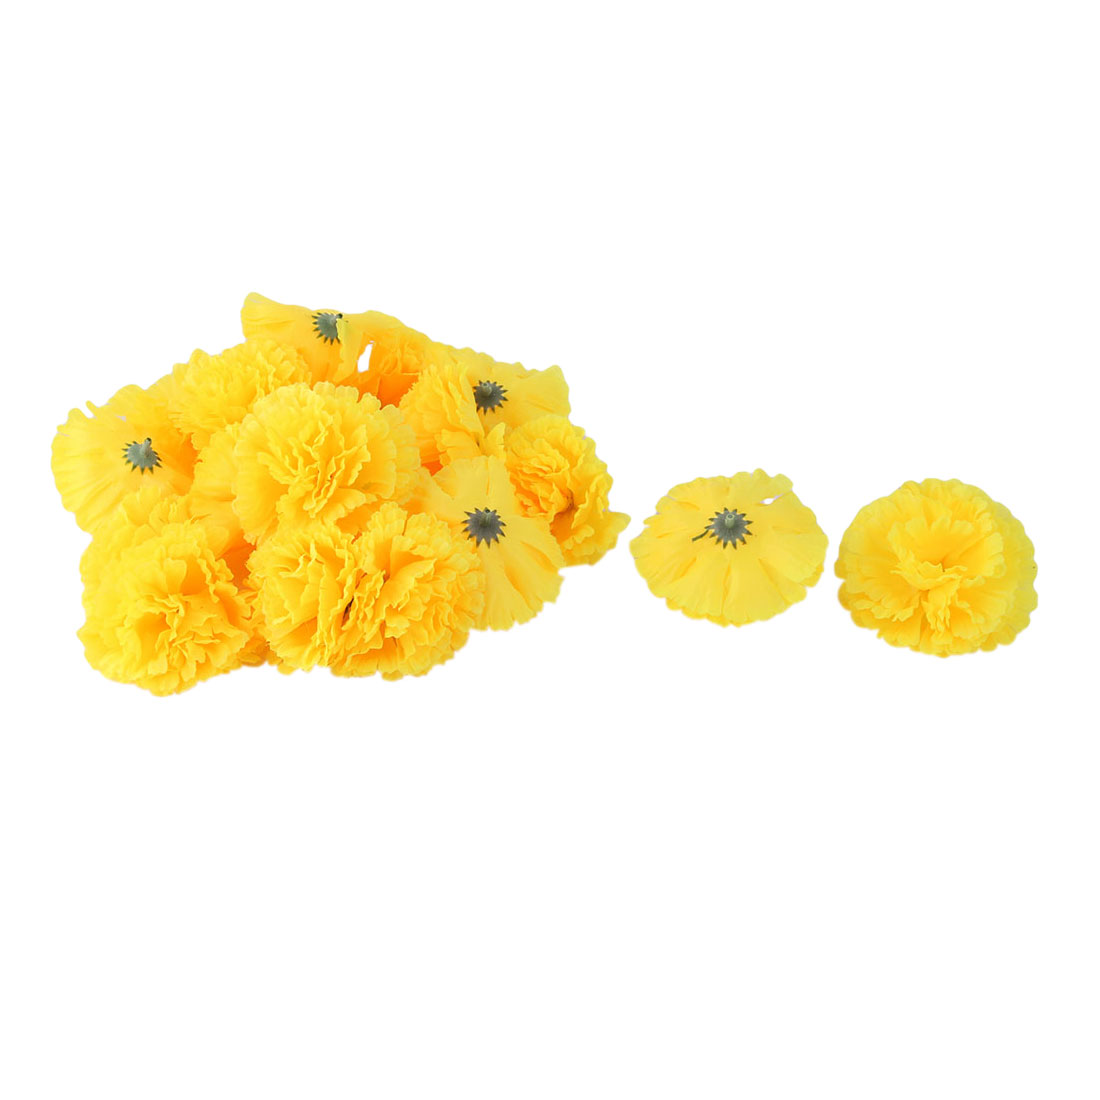 Wedding Party Fabric Artificial Carnation Flower Heads DIY Craft Decor Yellow 20pcs